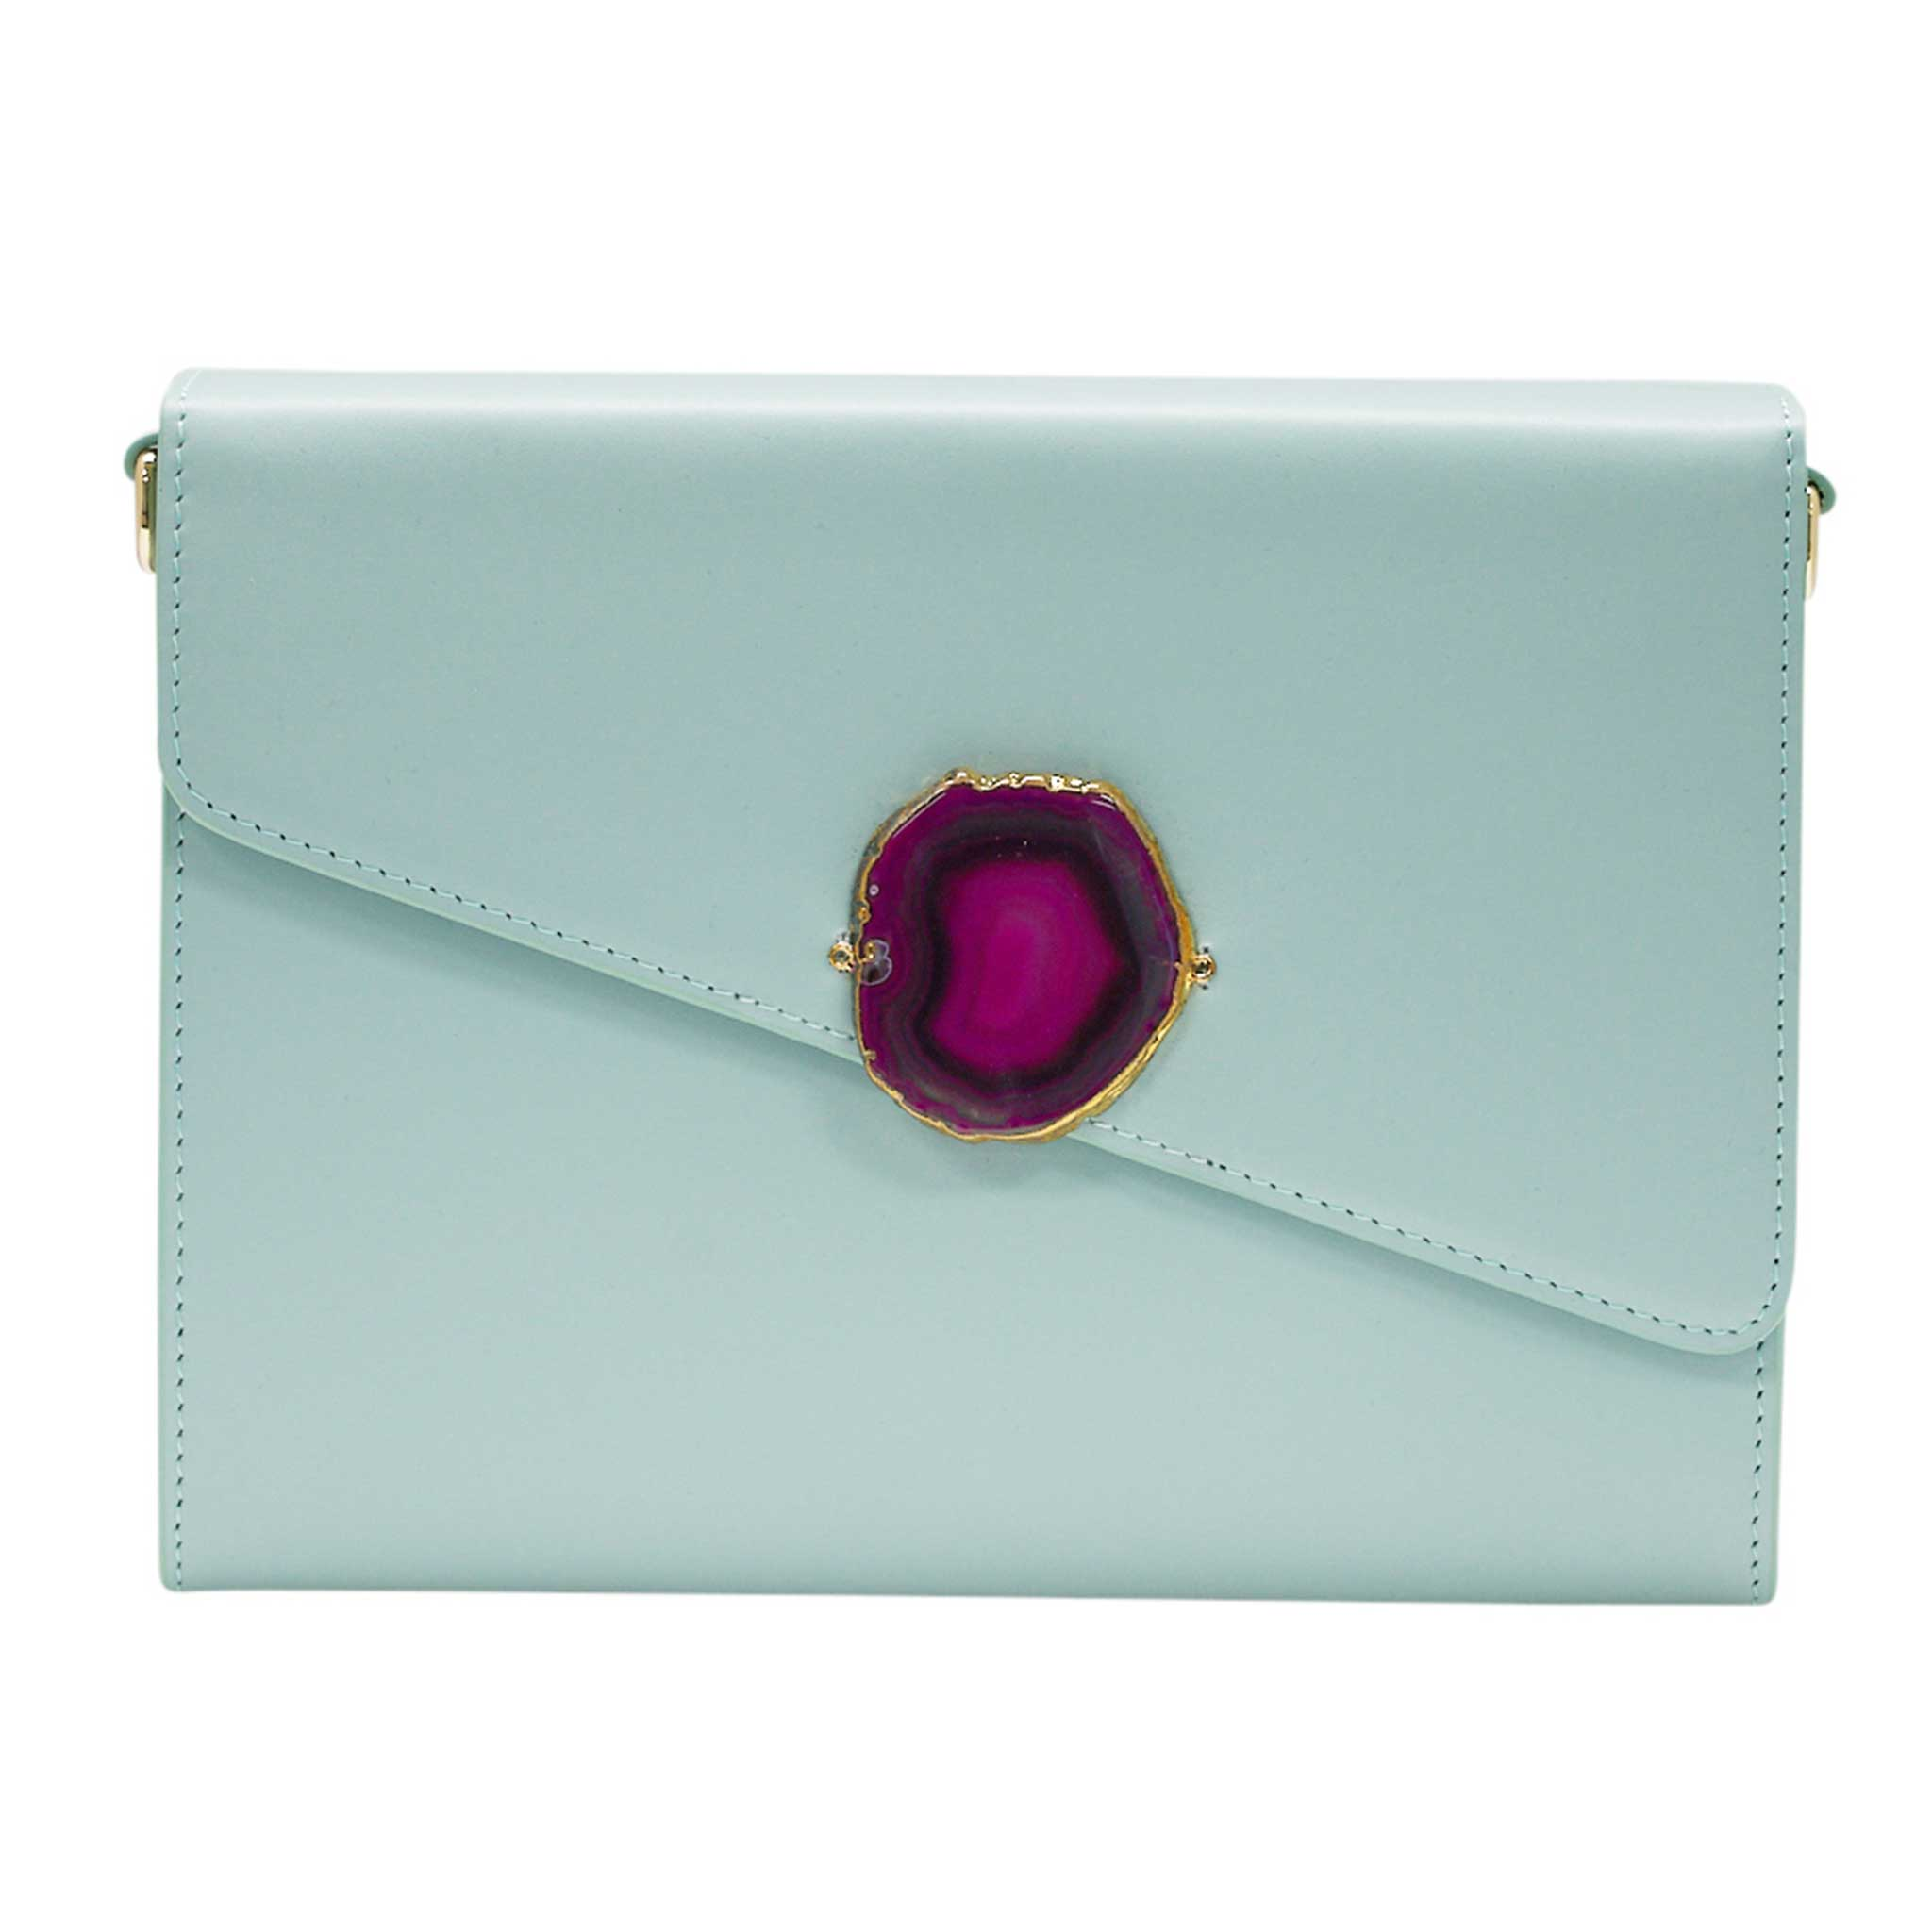 LOVED BAG - MOONSTONE WHITE LEATHER WITH PURPLE AGATE - 1.02.005.027